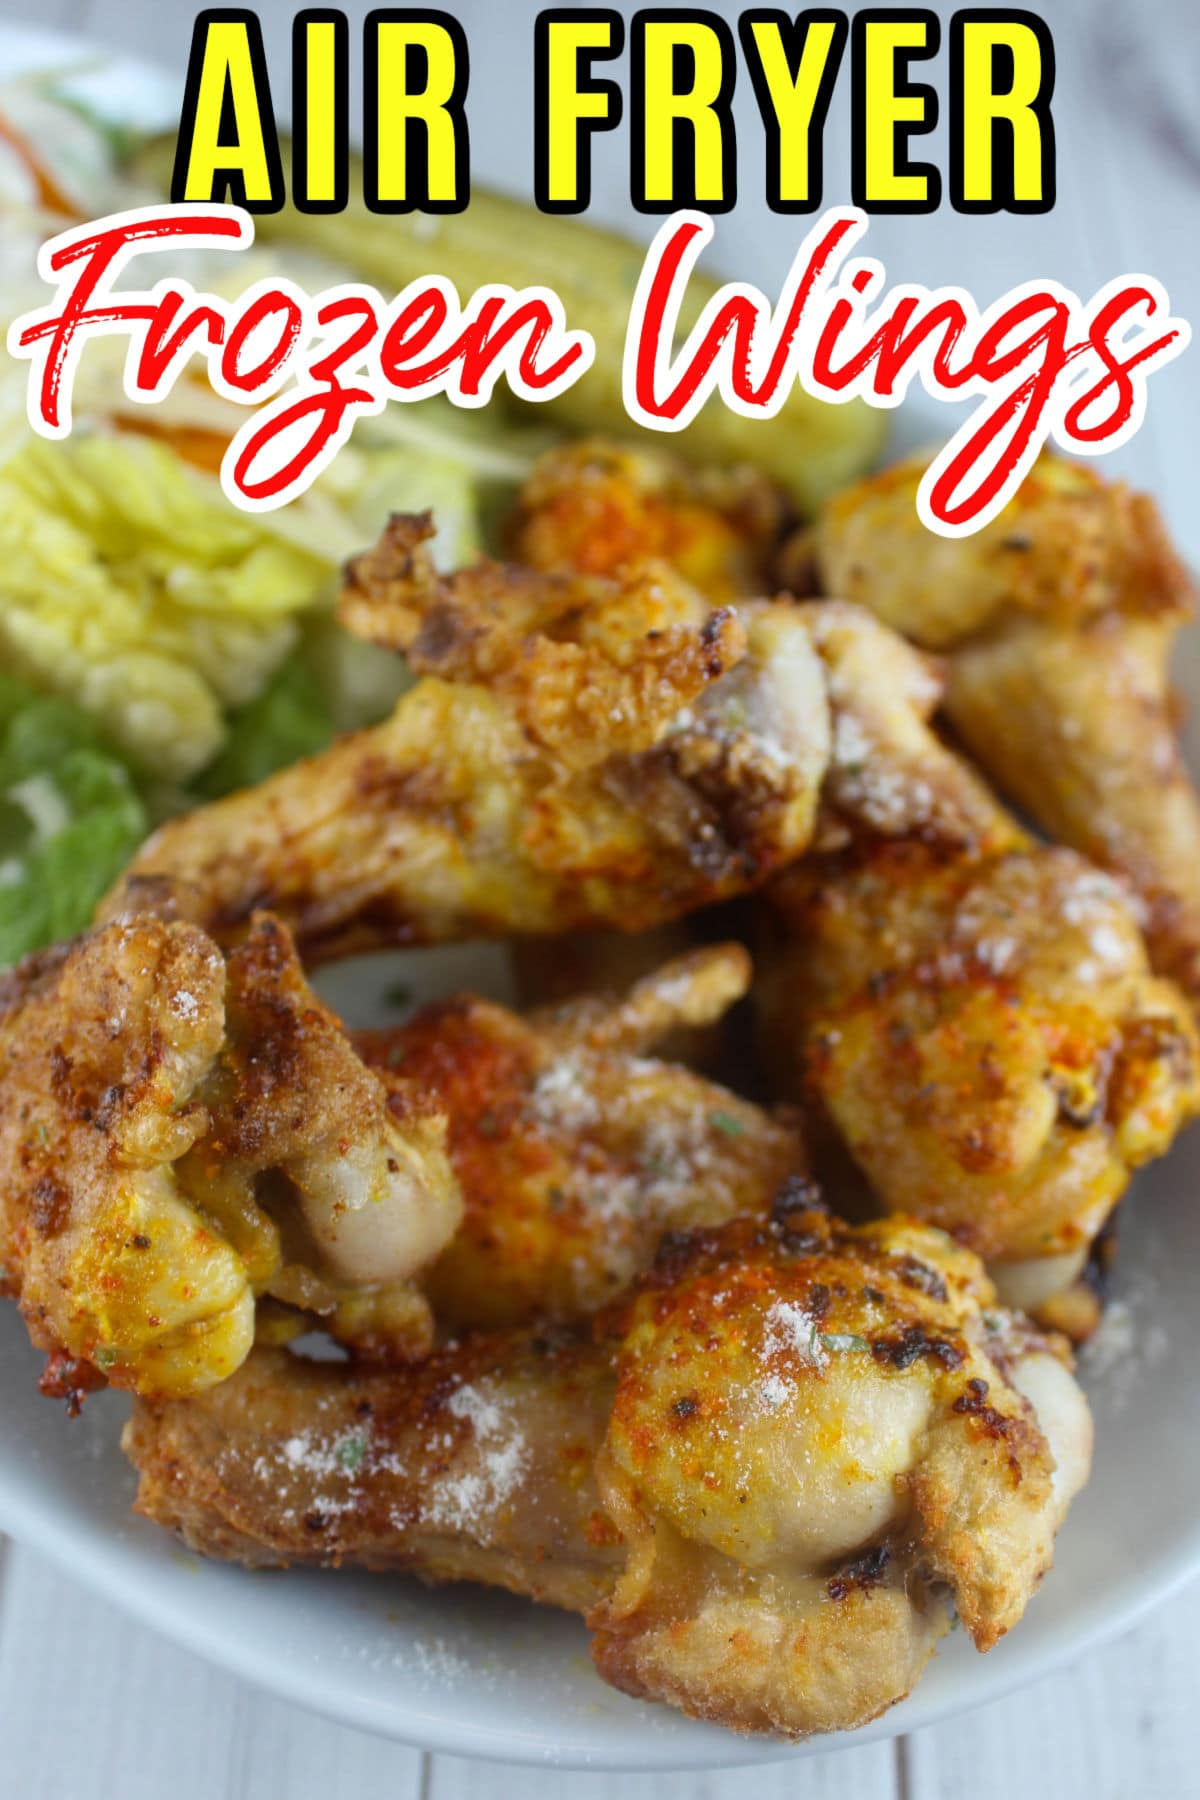 Frozen wings in the air fryer are so simple! There's a couple tips for seasoning them but they're done from frozen in just 20 minutes! You'll never buy those pre-cooked wings again! via @foodhussy